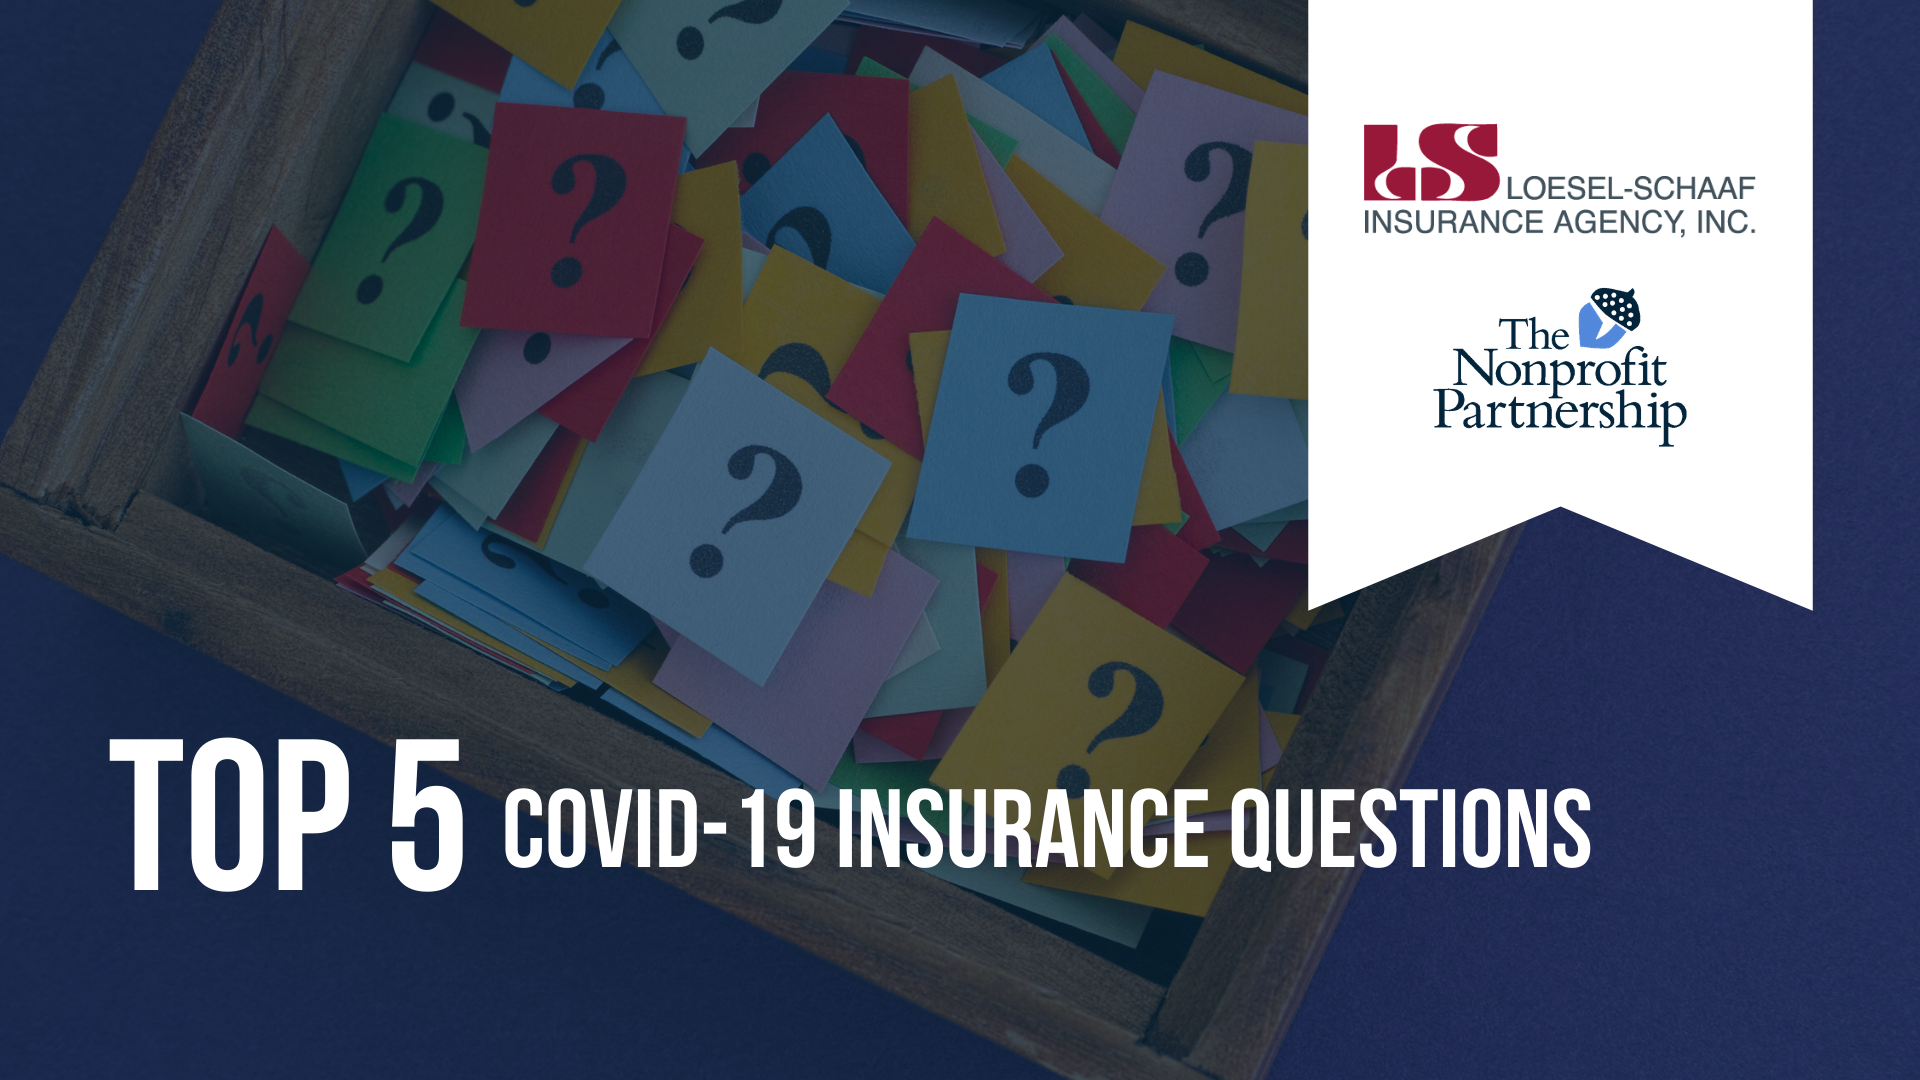 Top 5 COVID-19 Insurance Questions